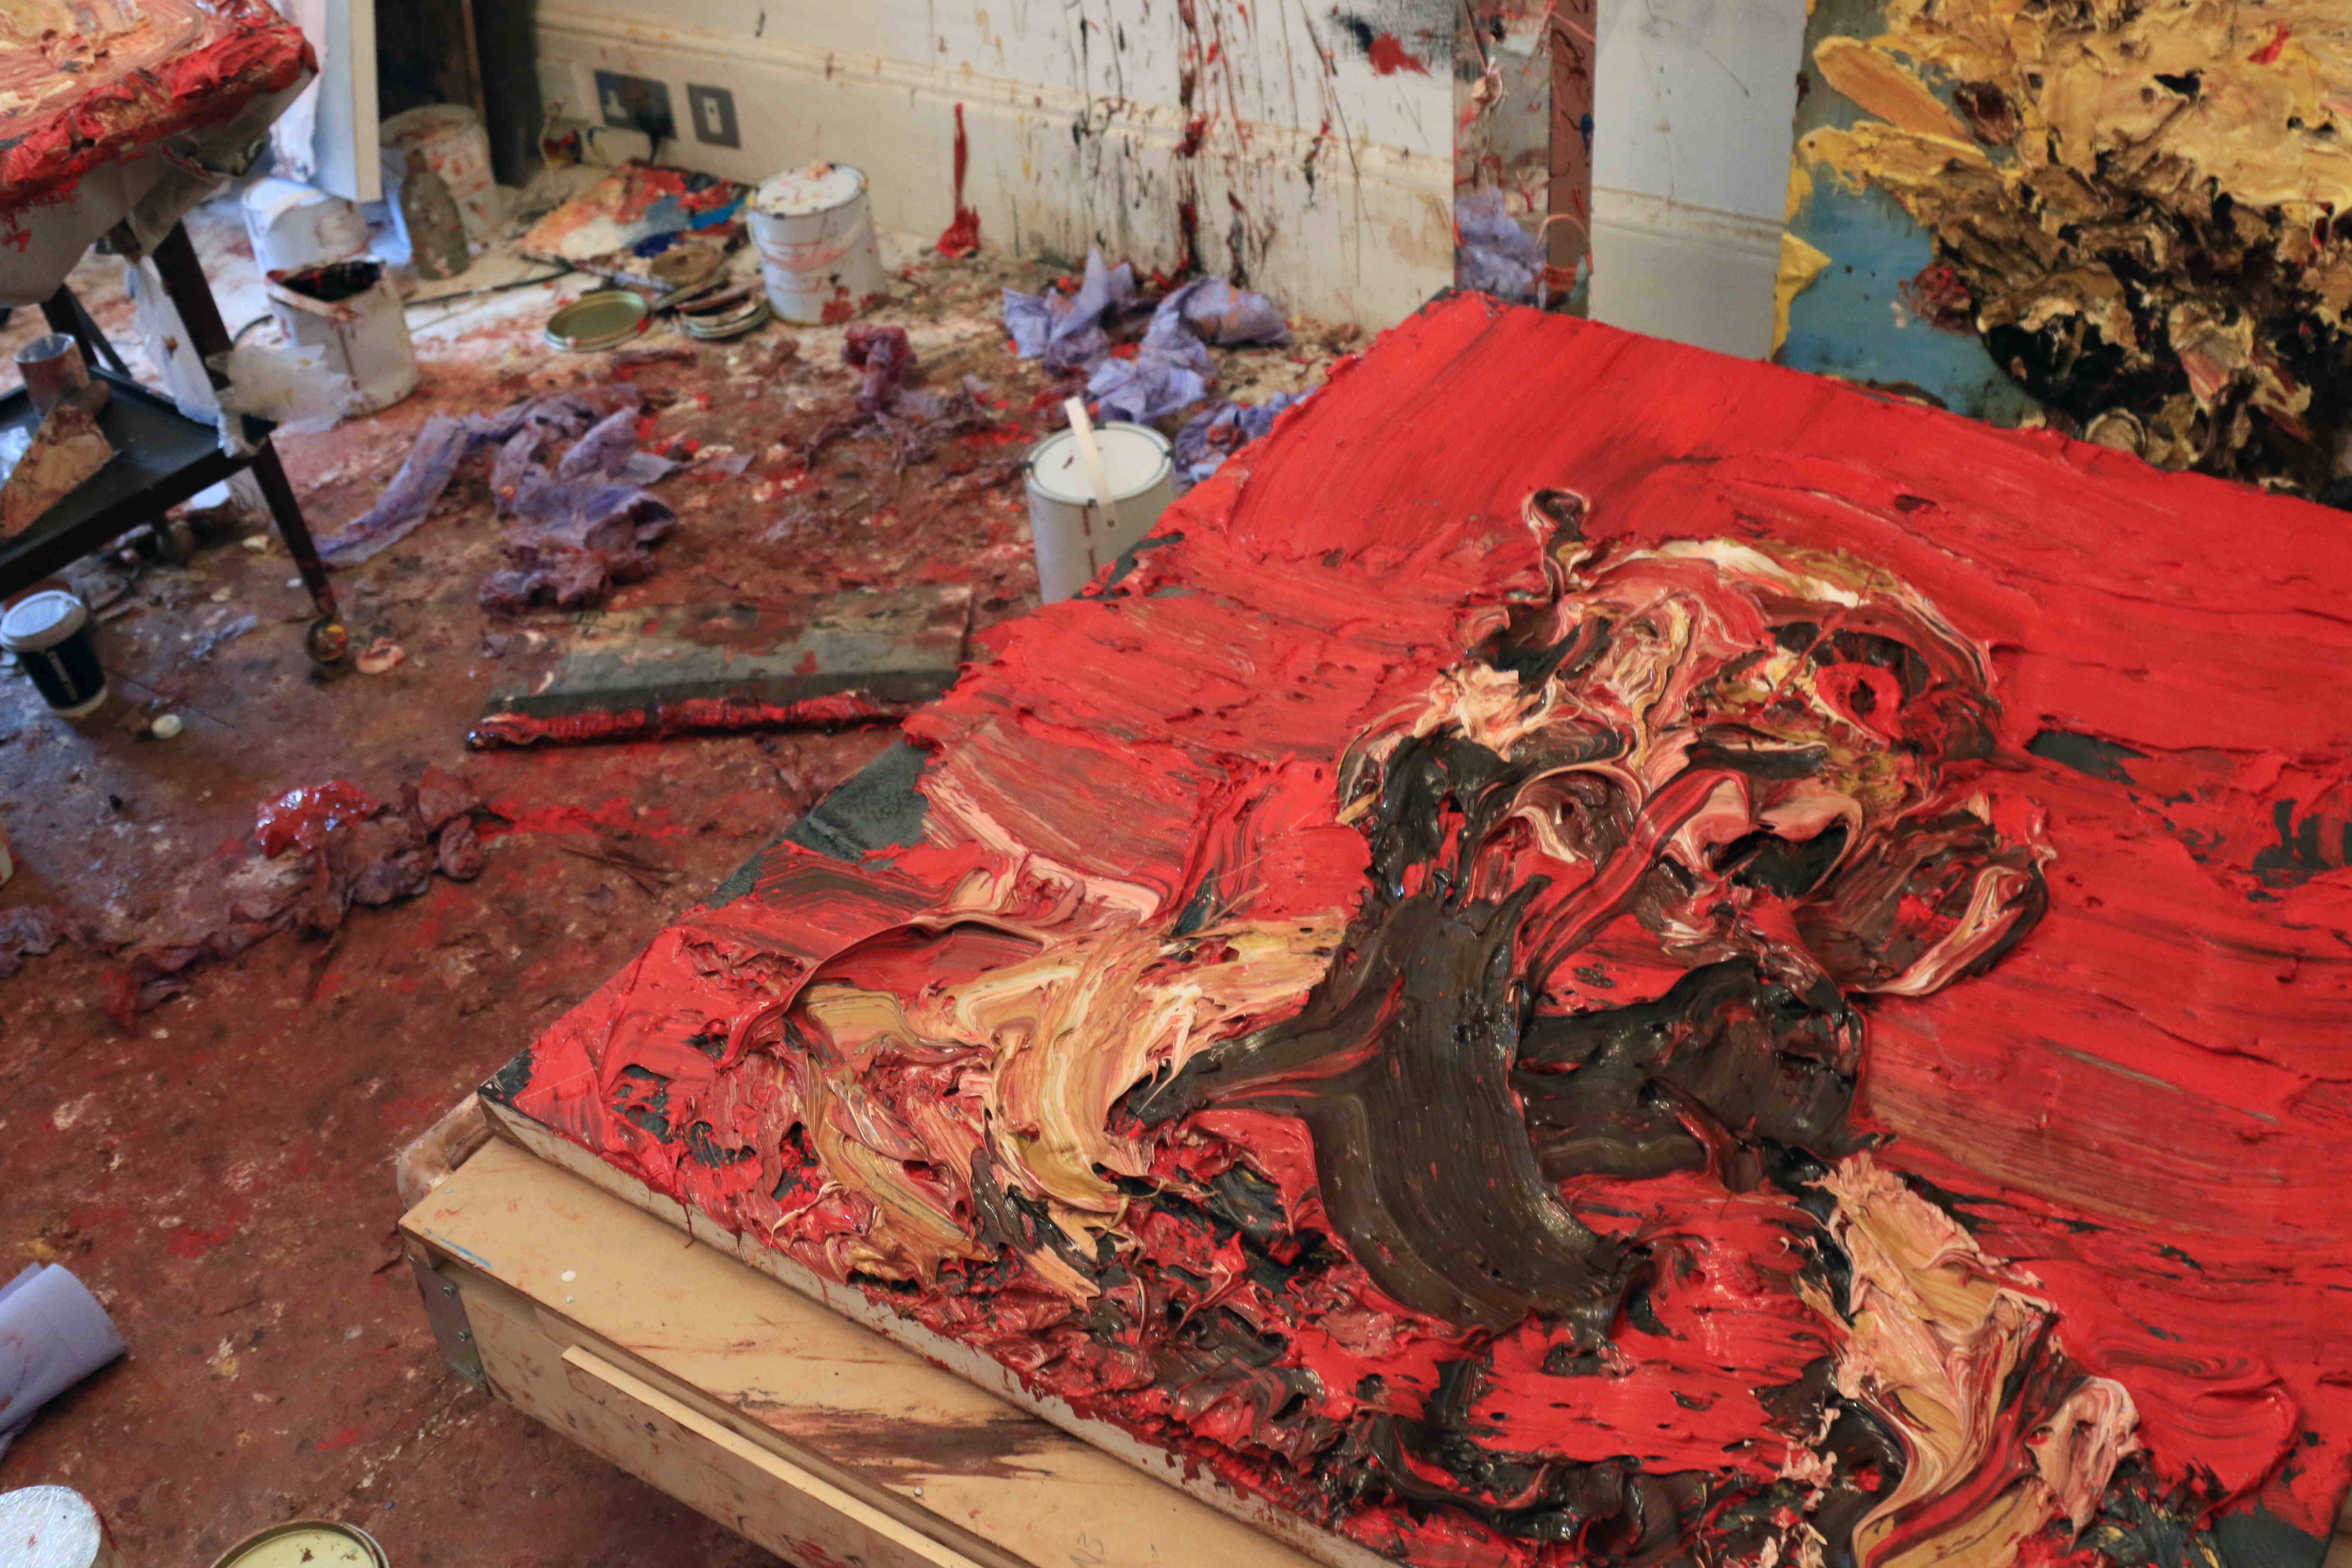 A scene in Antony Micallef's studio. Photo: Thomas Butler